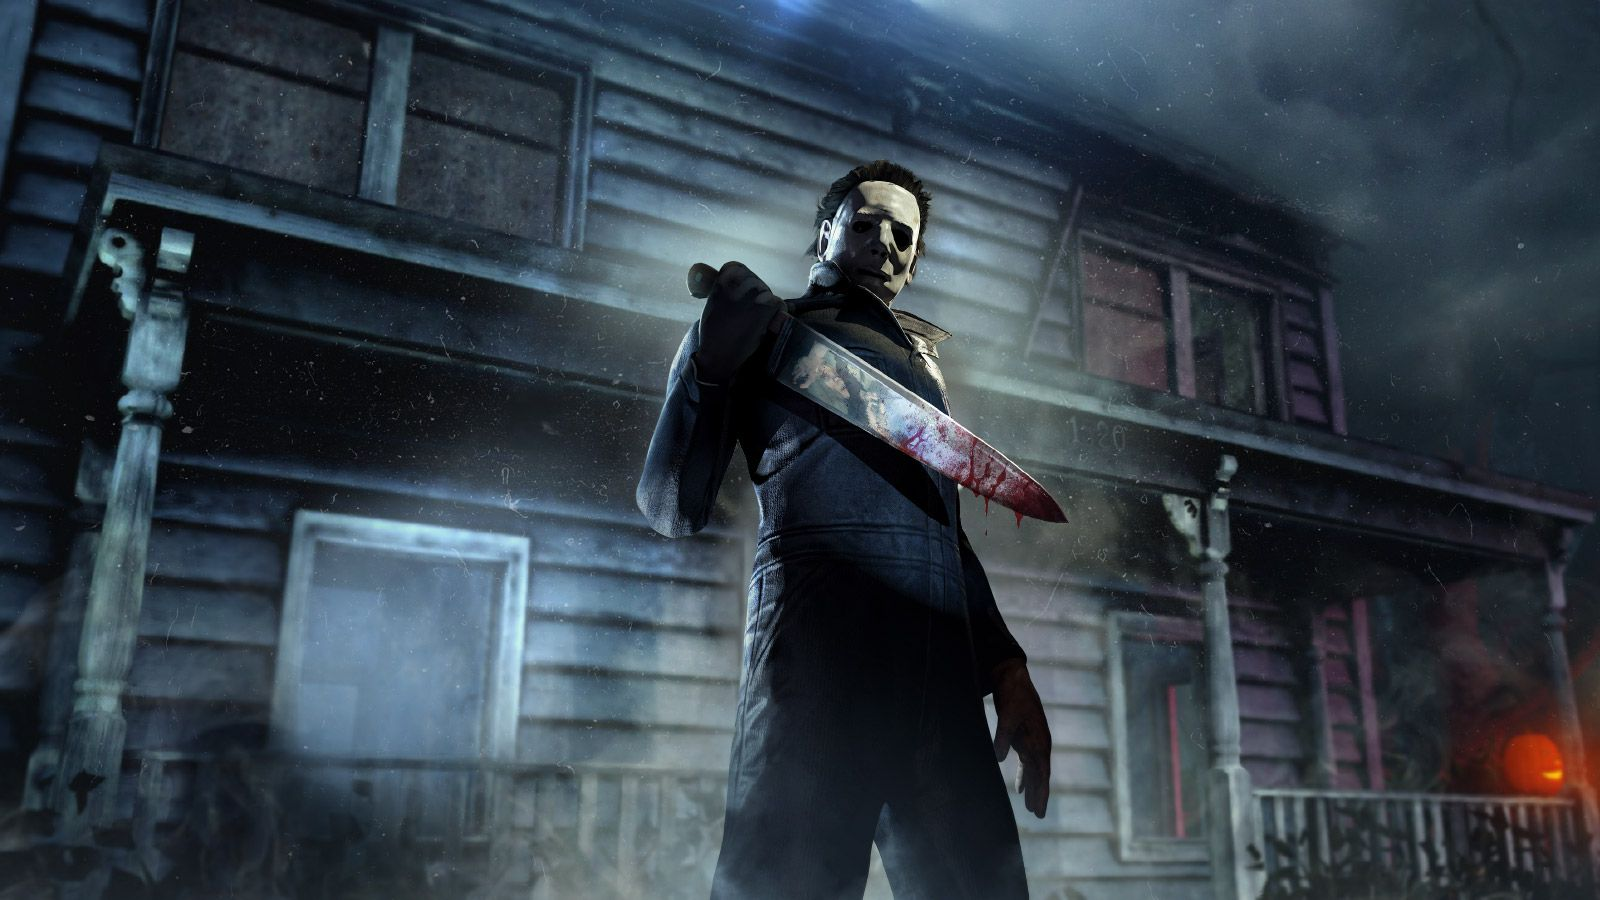 halloweens michael myers coming to dead by daylight polygon - Halloween Video Game Michael Myers